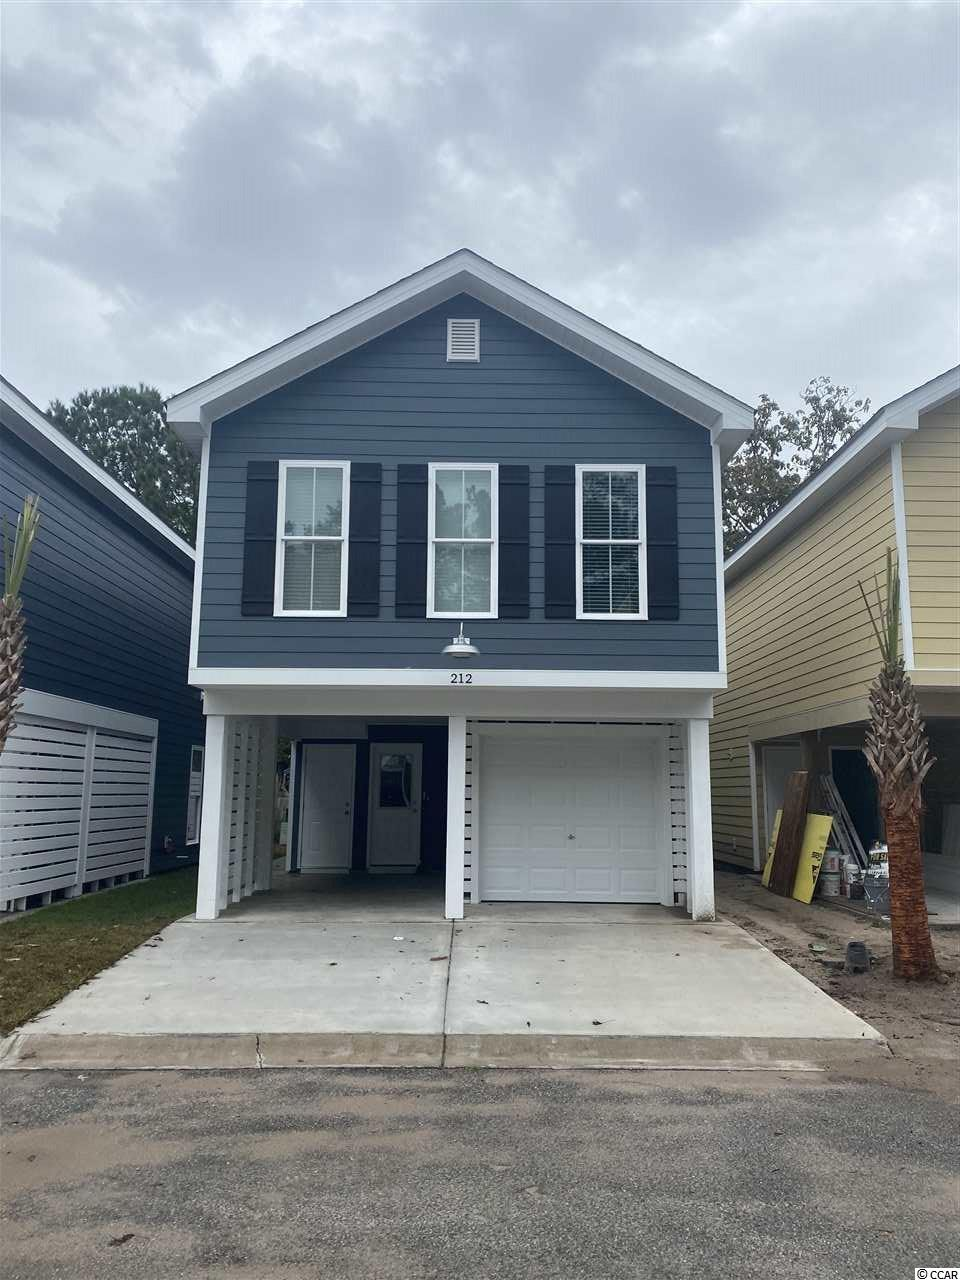 """Although only one mile from the Garden City Pier with a golf cart path the entire trip, this home is nestled in a quaint 30 home community with excellent amenities such as a swimming pool and more! ** New kitchen layout ** This home features Granite countertops in the  kitchen, under-mount """"SS"""" sink, GE appliance package with side by side counter depth fridge, ice maker and water dispenser. The white subway tile backsplash accentuates the quality of the kitchen! Bathrooms include Carrera Marble solid surface countertops with under-mount sinks, ship-lap walls and comfort height toilet in the master. Cathedral ceilings in the master bedroom give an open and spacious feel to this home.These ceilings are extended throughout the kitchen into the living room, adding a greater sense of space. To keep the coastal cottage feeling throughout, the living room is accented with a shiplap wall. What really makes this feel authentic is the laminate flooring wall to wall; except wet areas where 18x18 modern tile adorns the floor. There are far too many upgrades to include in this description so contact your realtor or myself to schedule a showing!"""